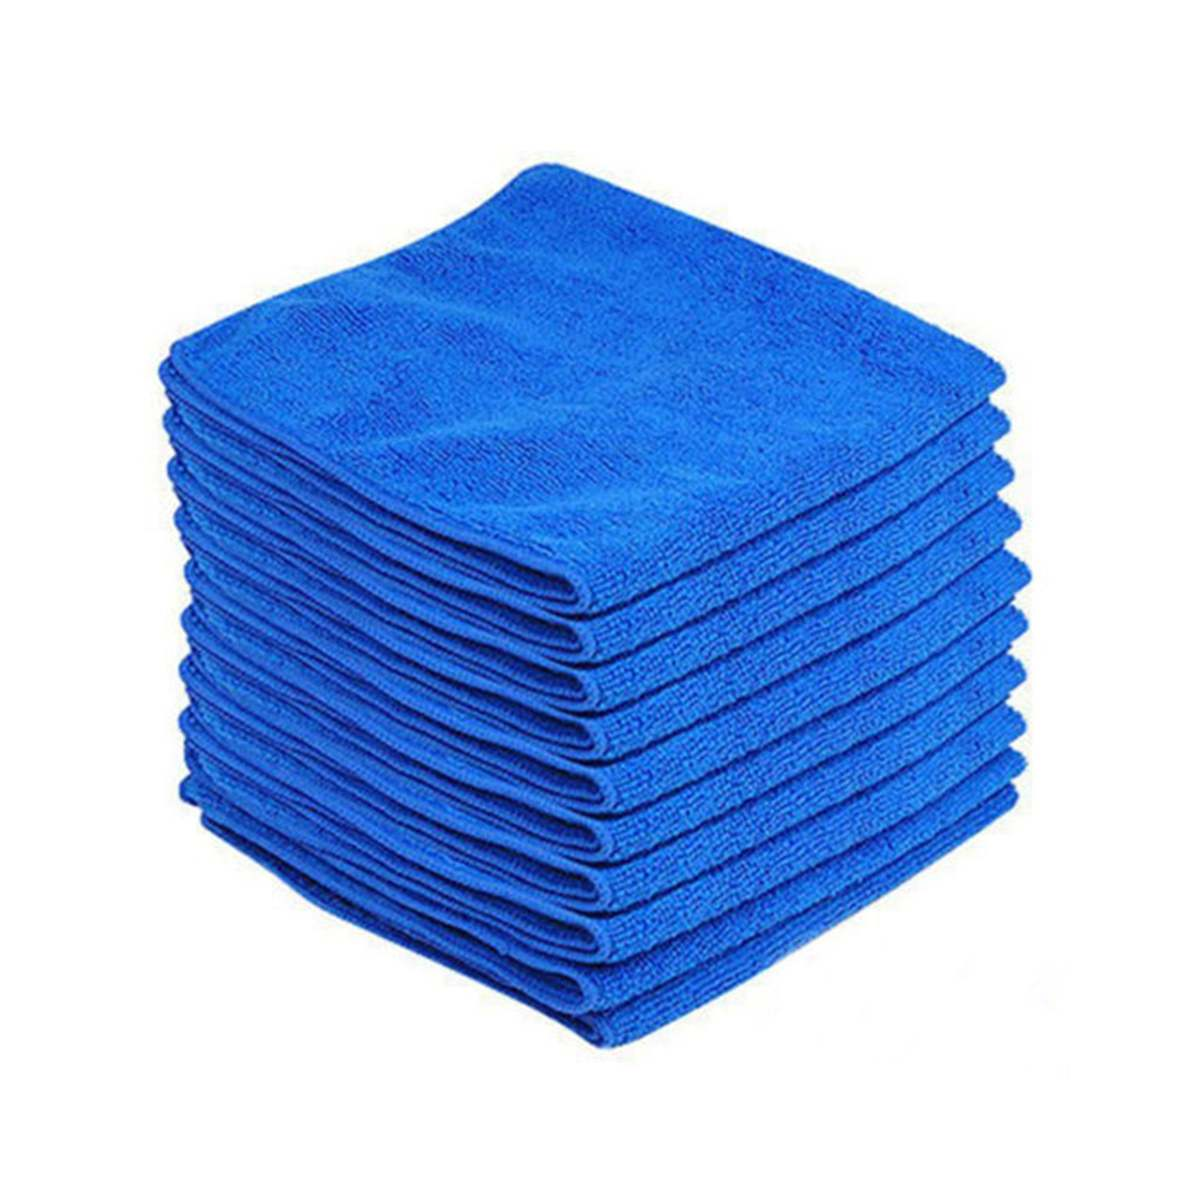 5//10x Soft Auto Car Microfiber Wash Cloth Cleaning Towels Hair Drying Duster HI